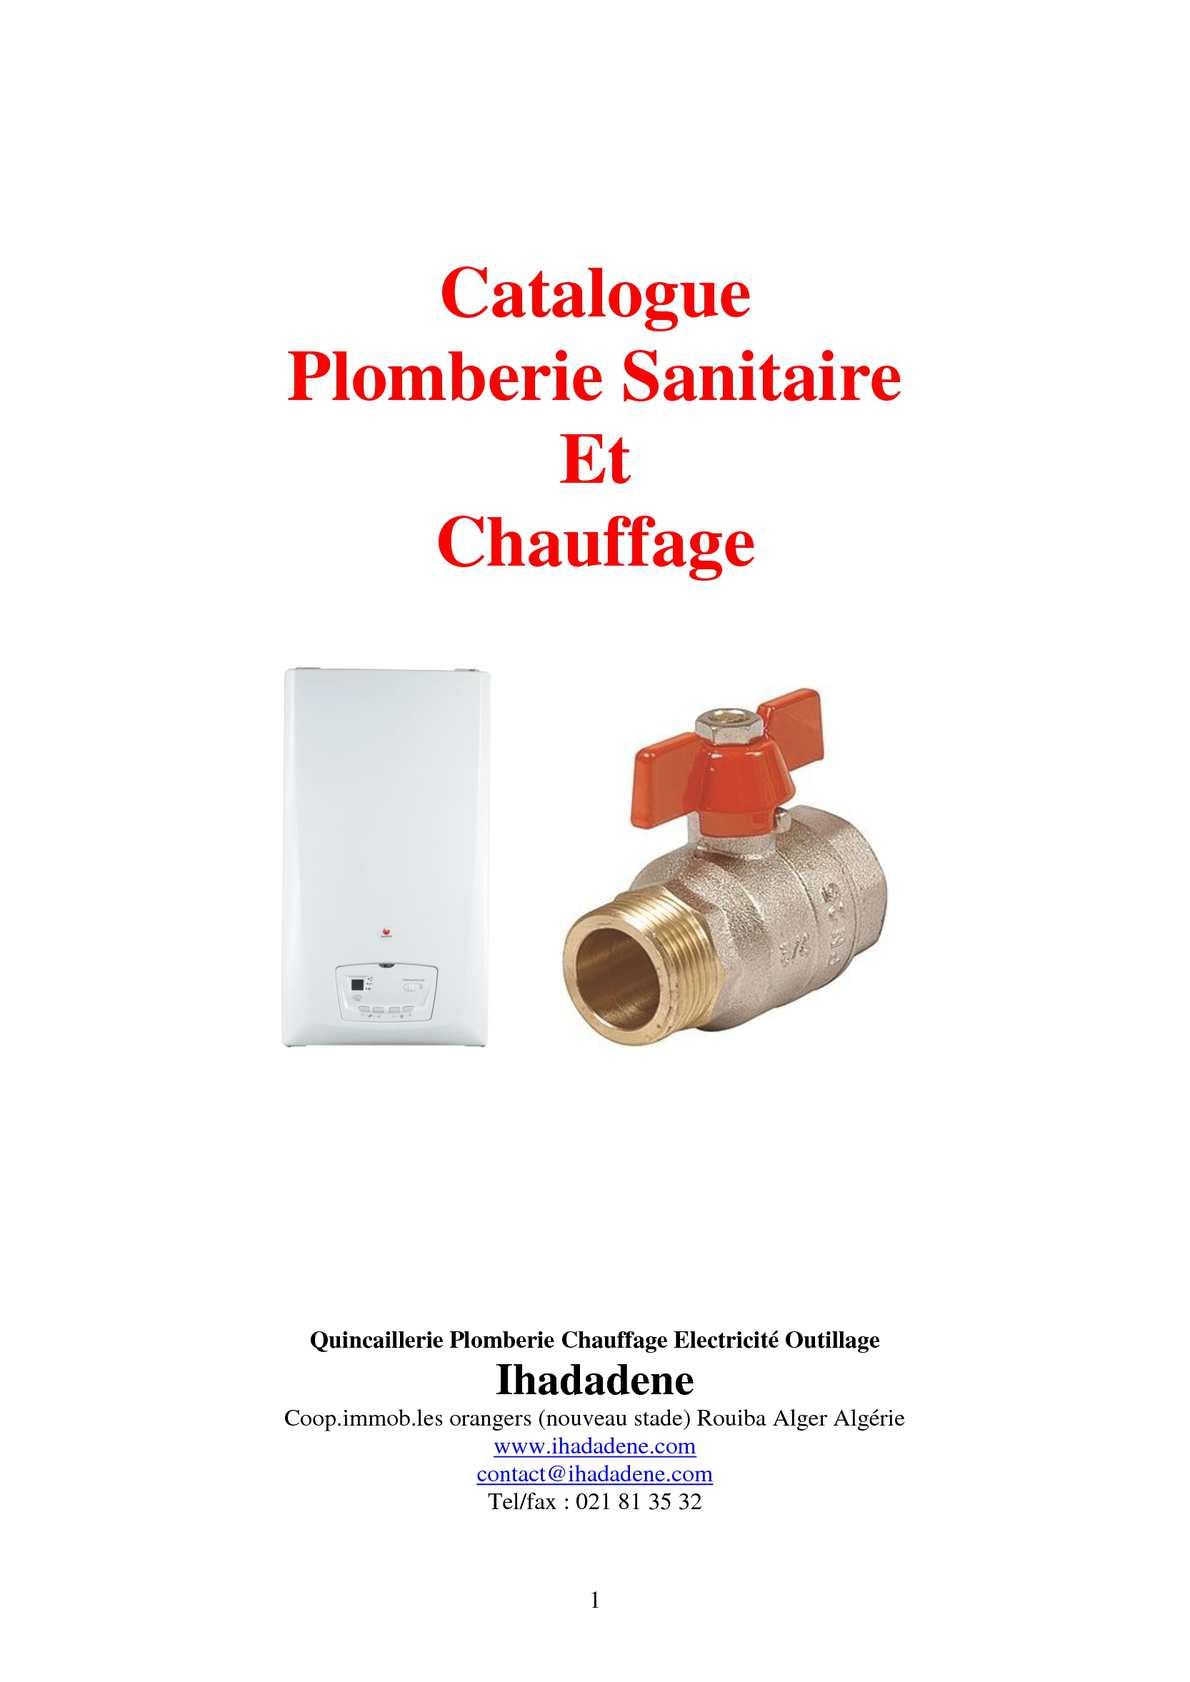 Calam o plomberie chauffage for Plomberie sanitaire algerie